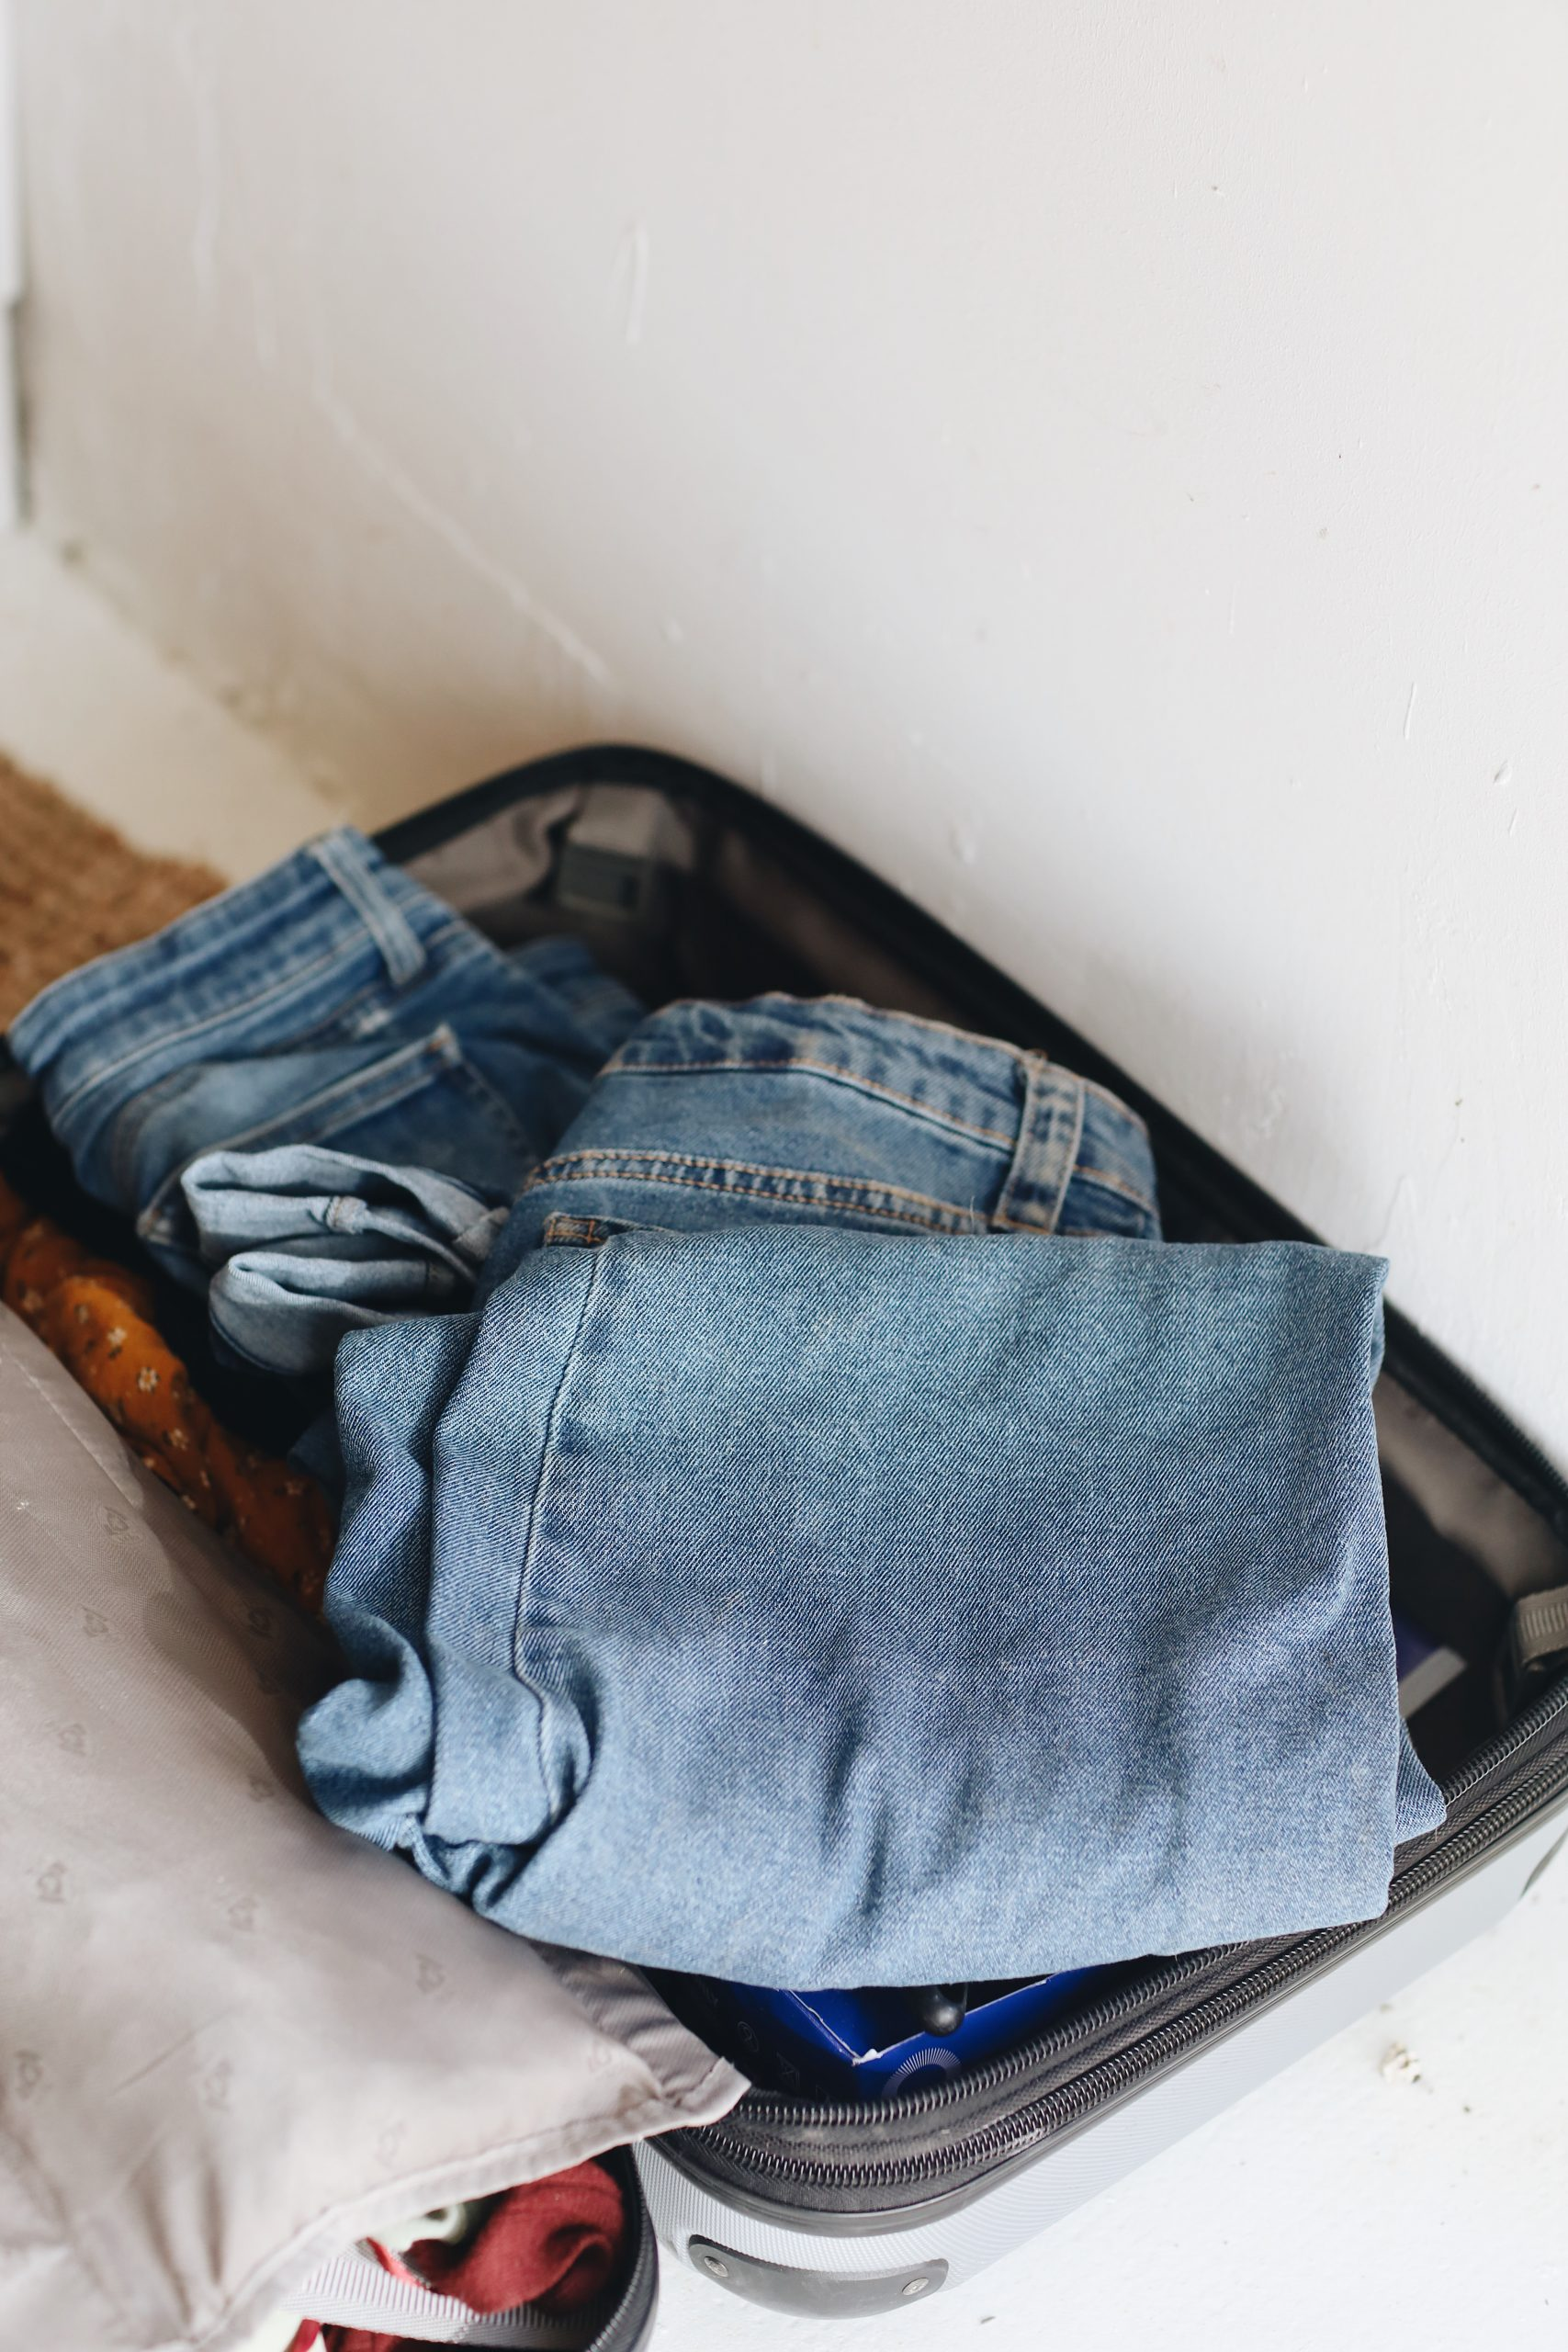 7 Of The Best Travel Jeans For Women